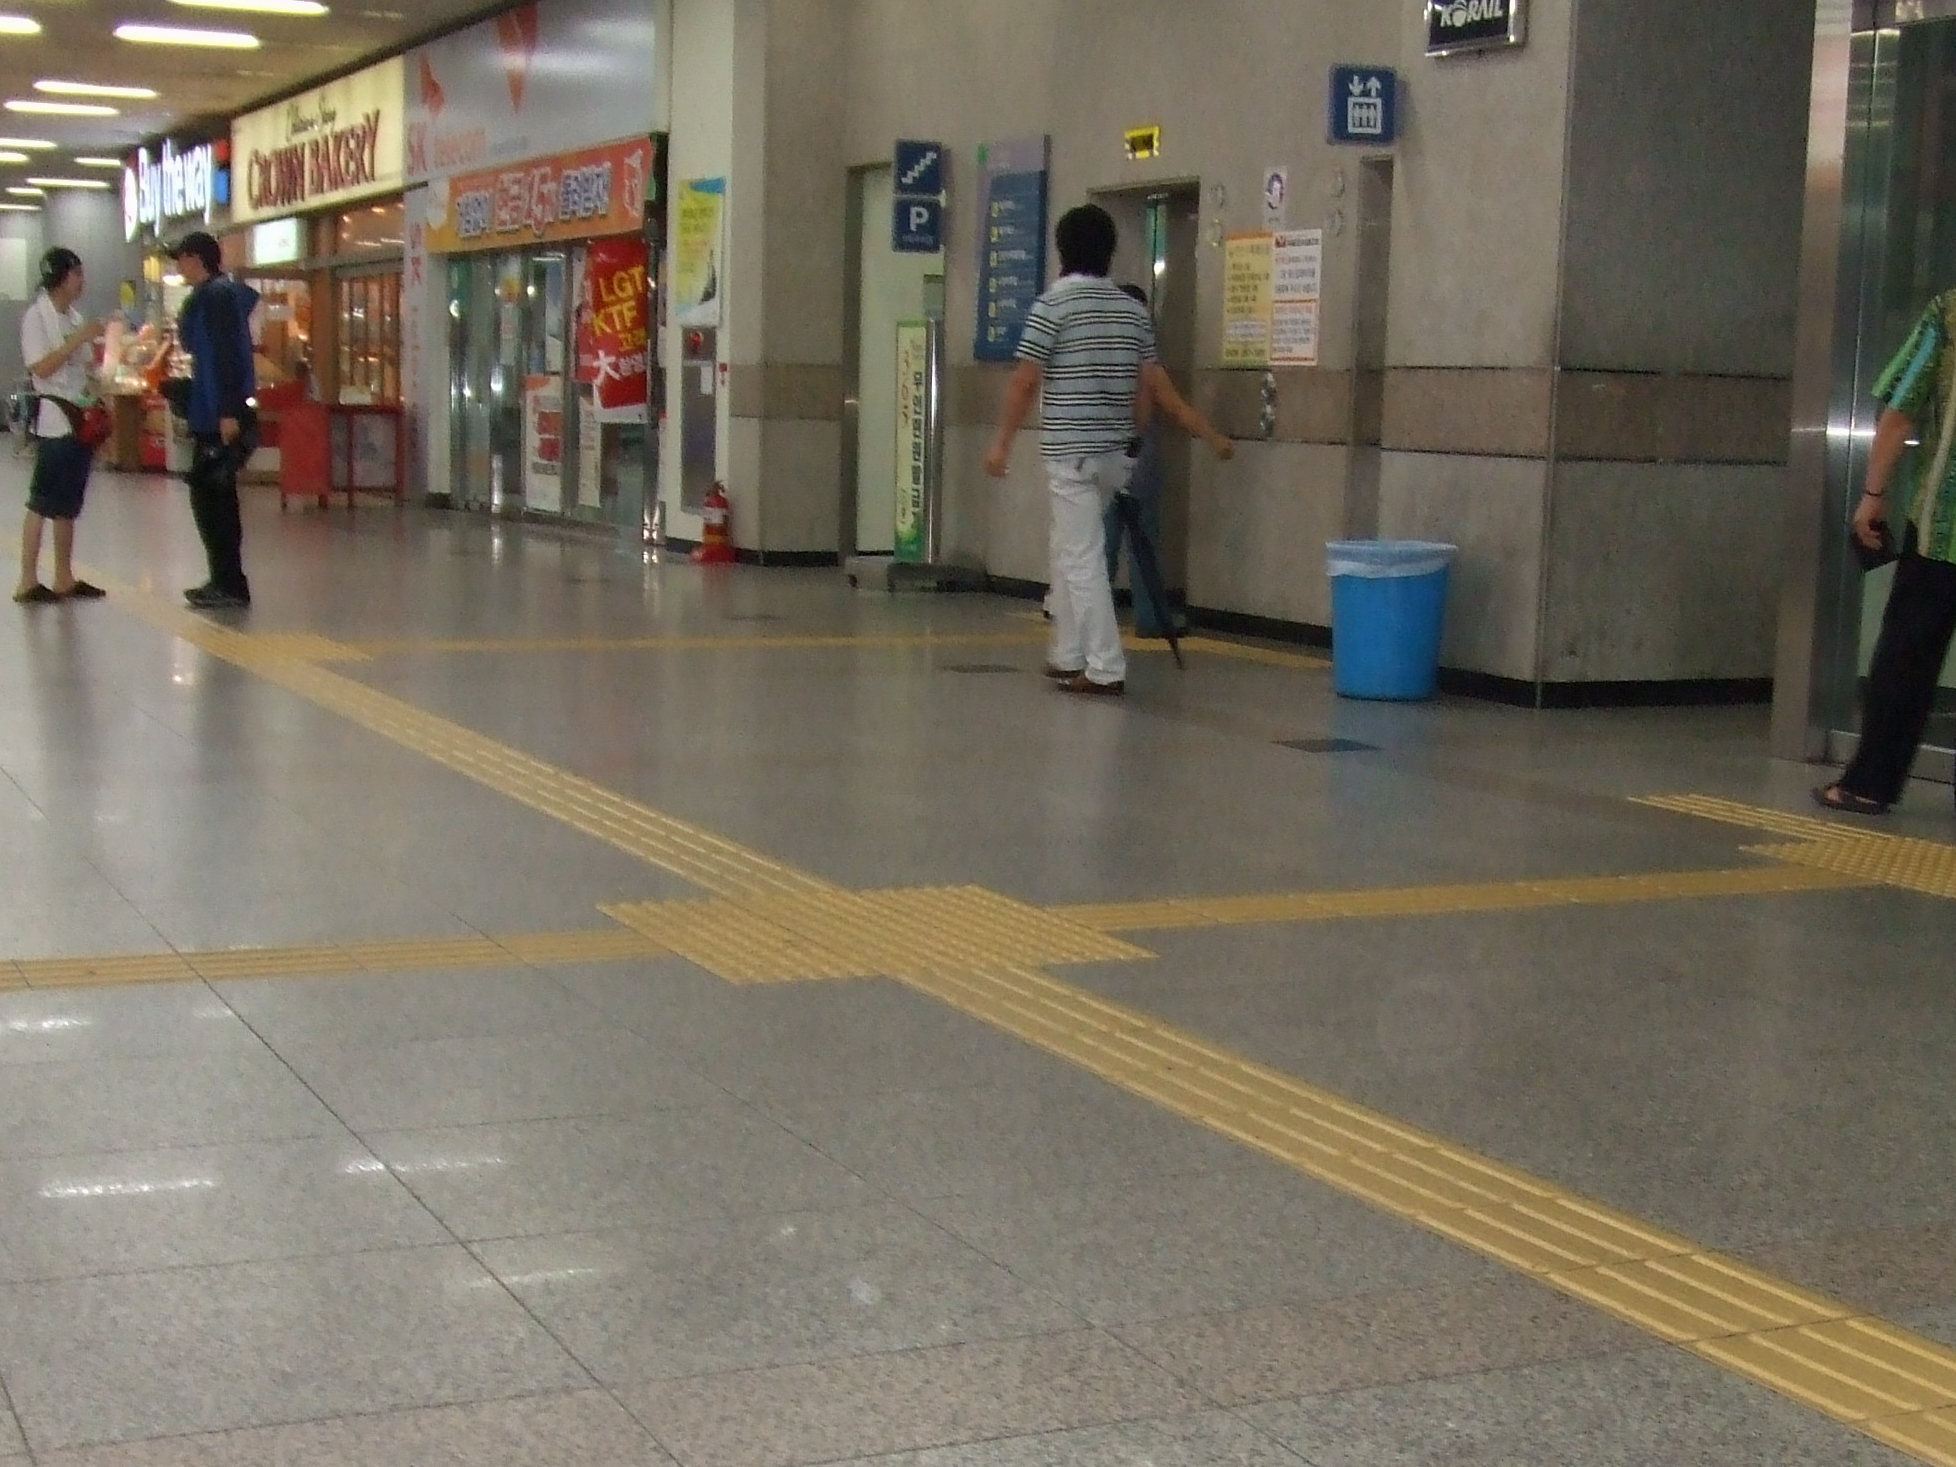 tactile paving for people with vision disabilities in Seoul